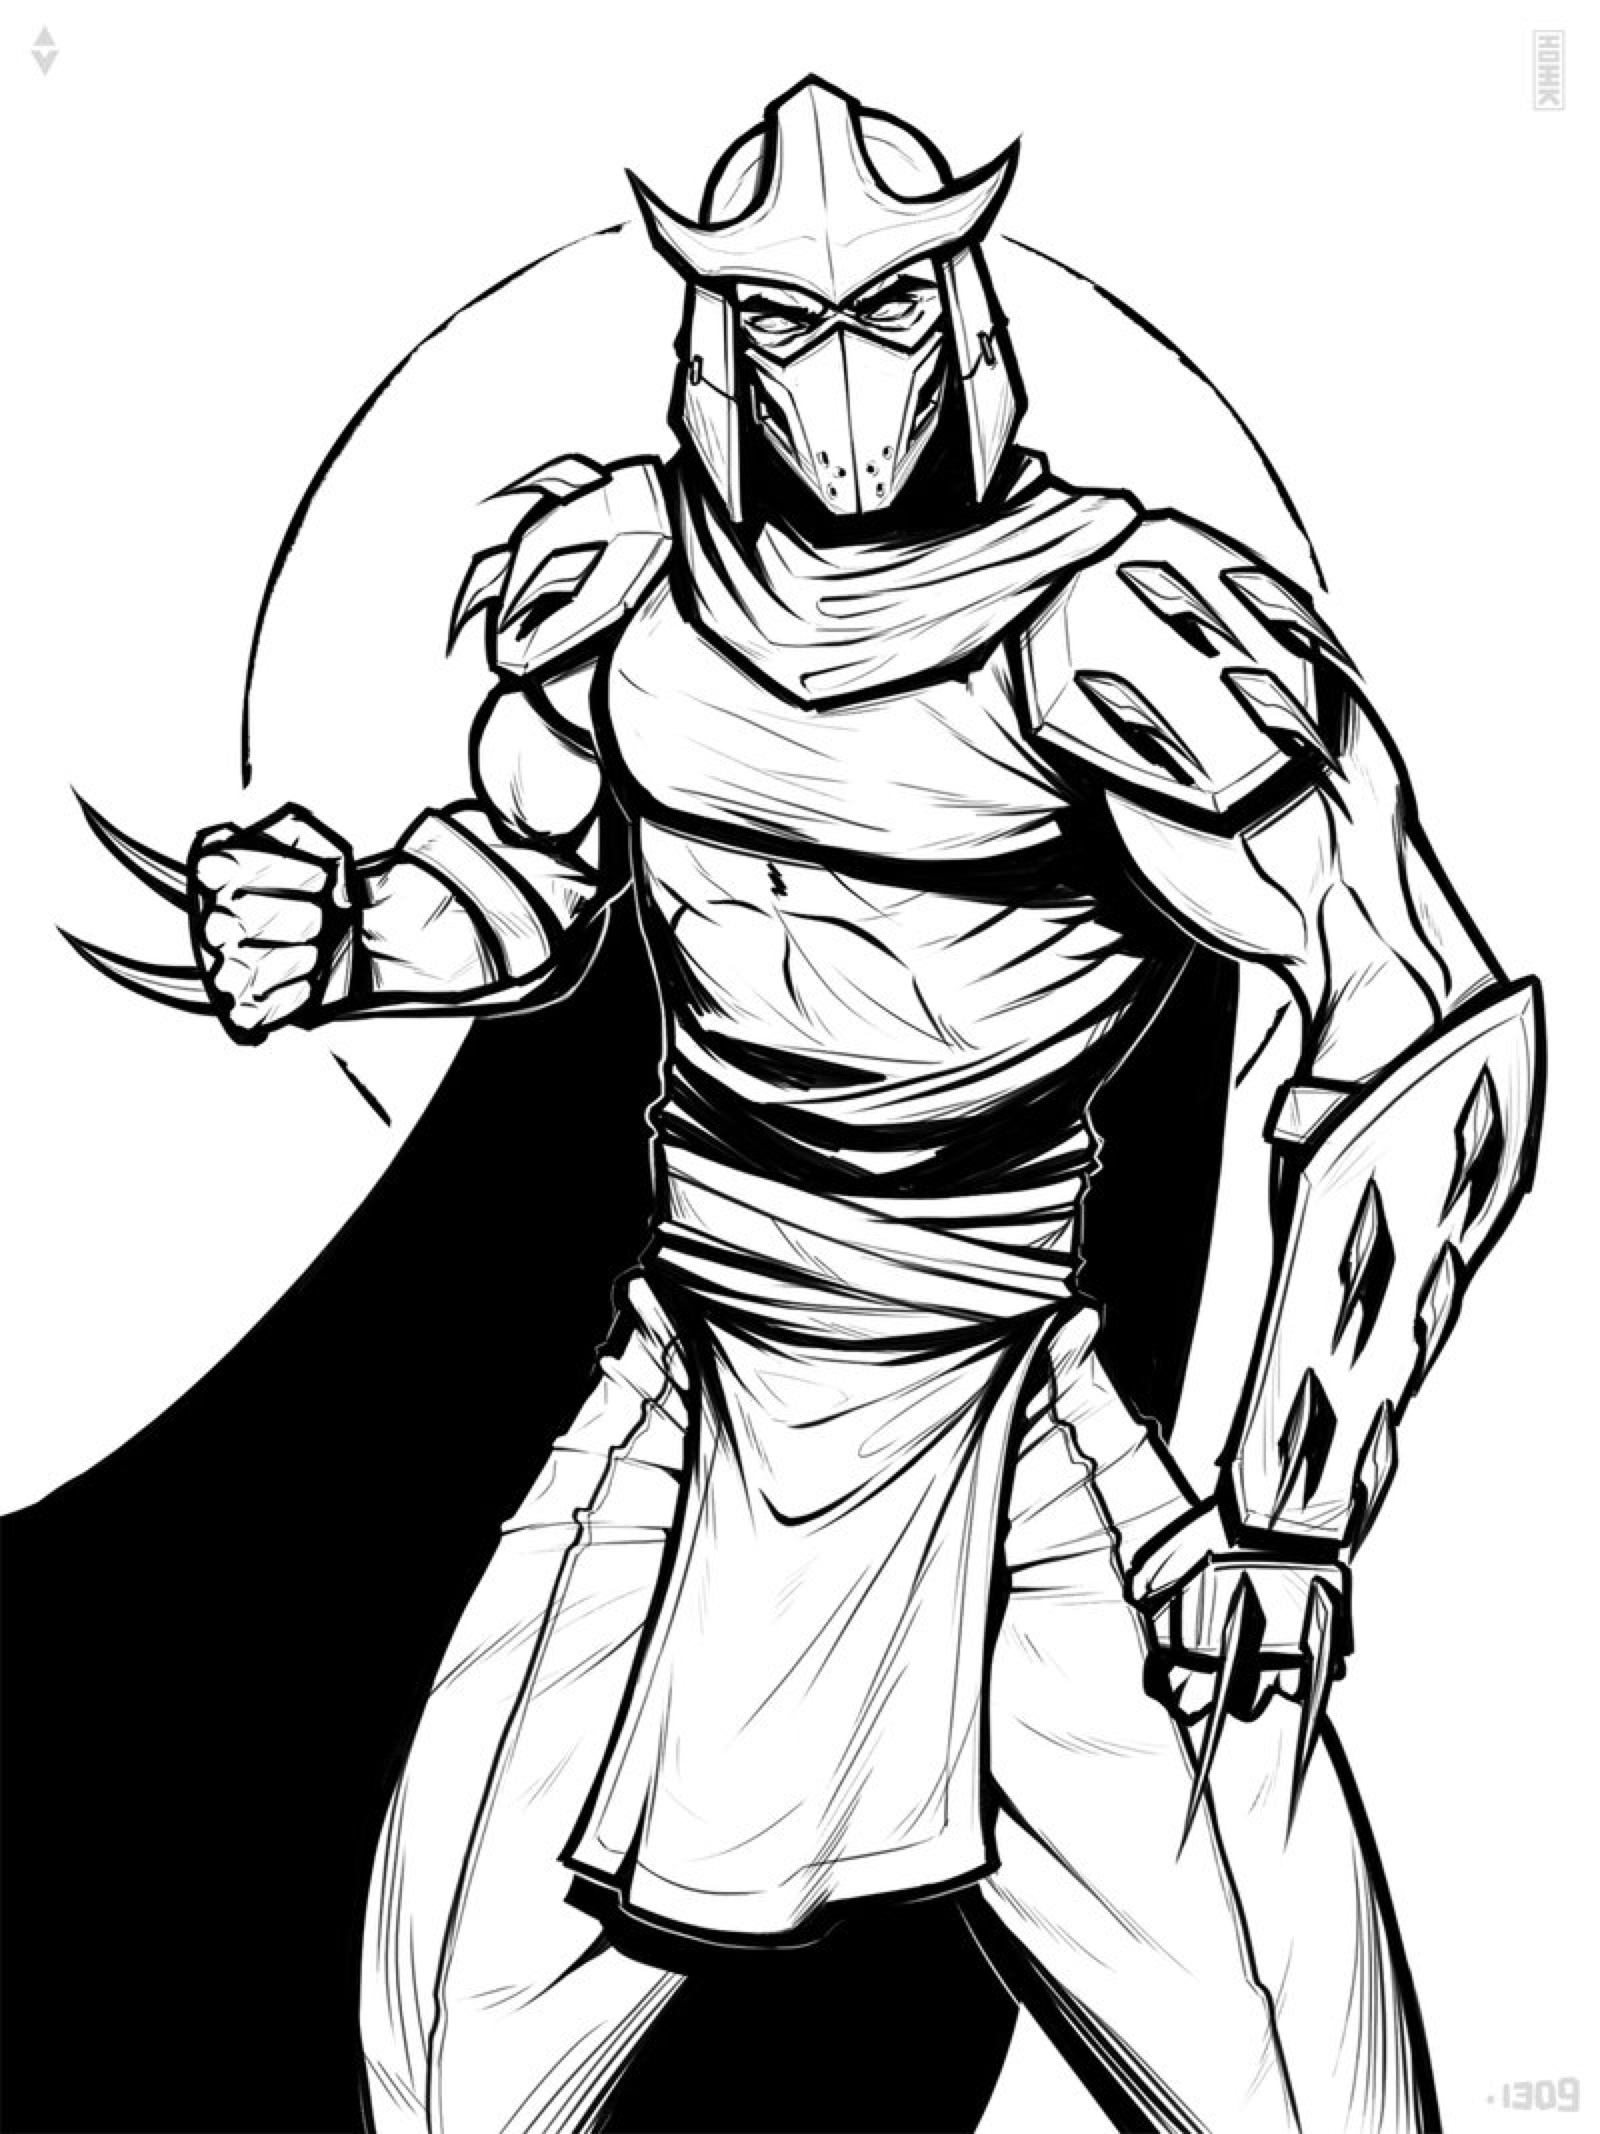 shredder coloring pages shredder coloring pages to download and print for free shredder pages coloring